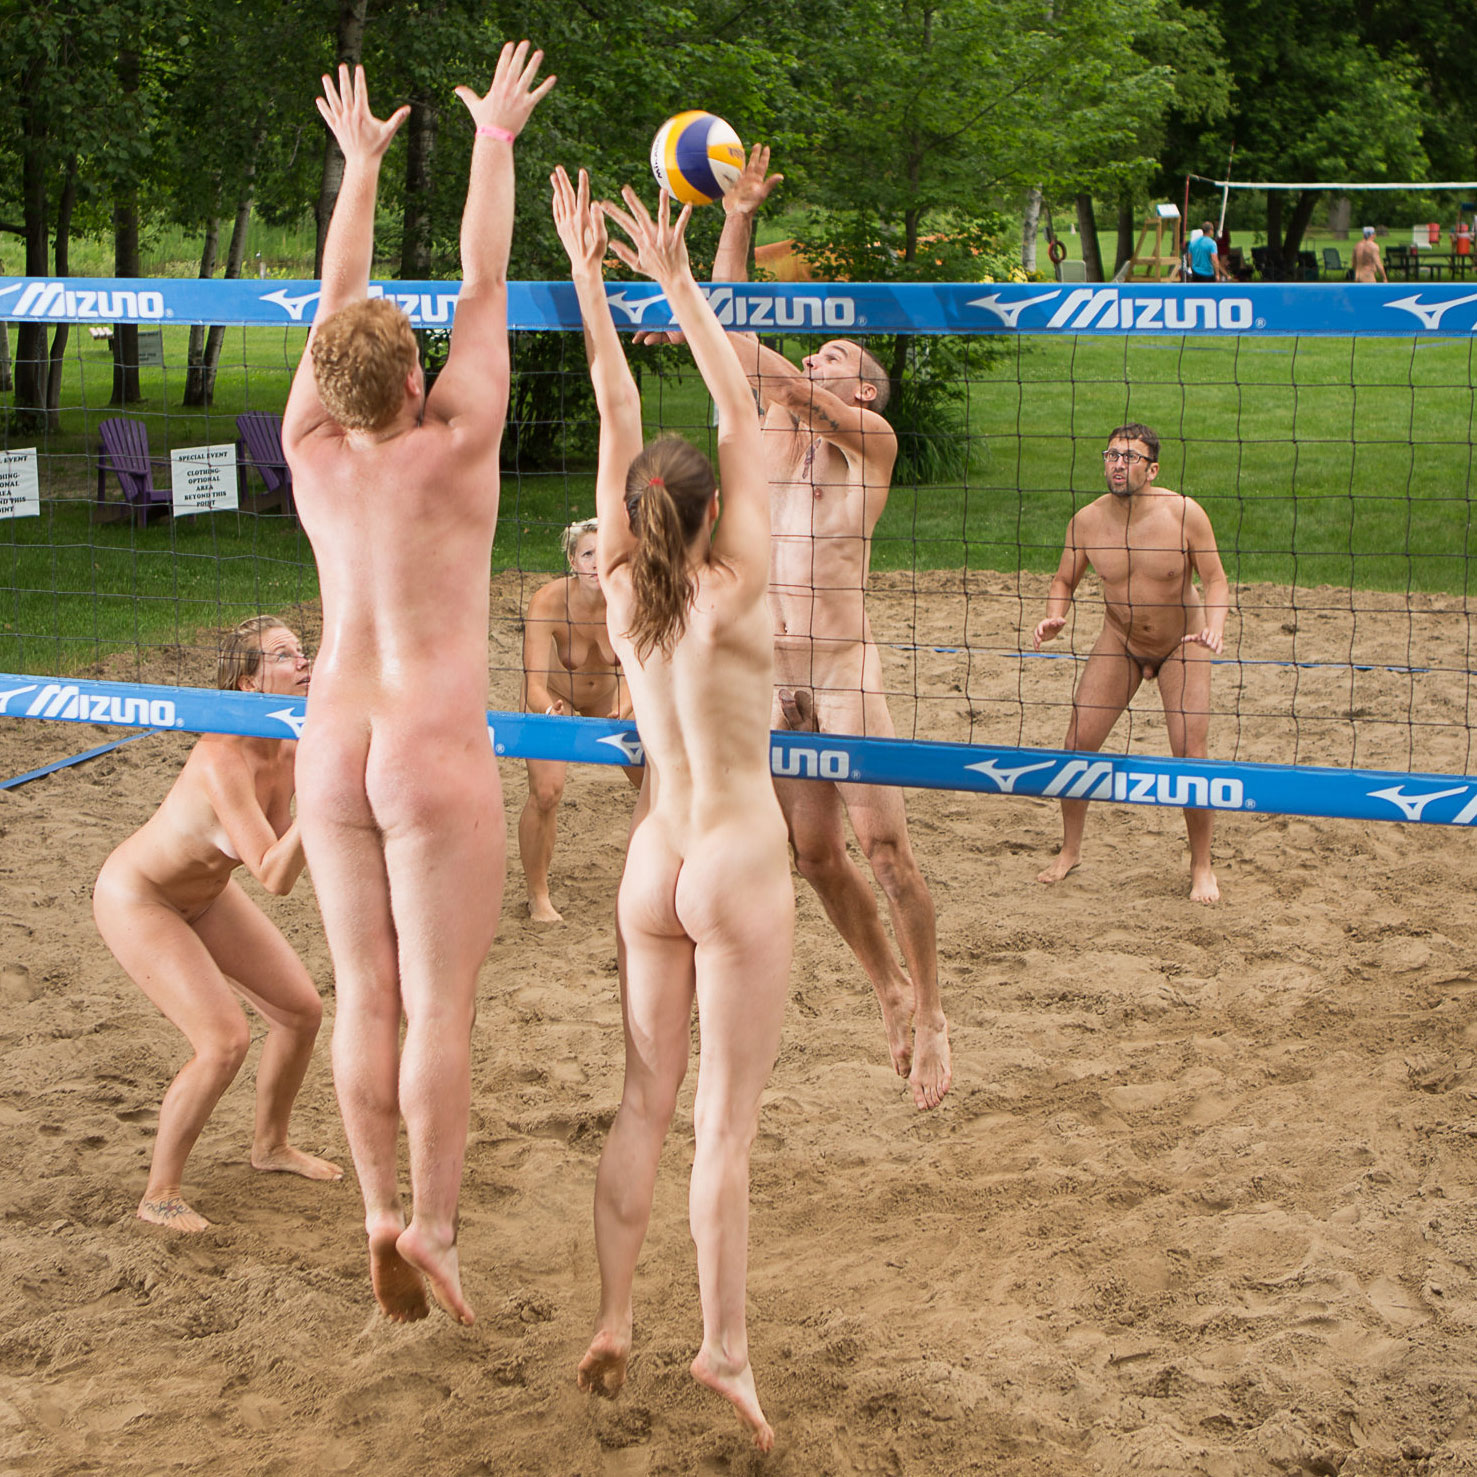 Search results for volleyball naked girls